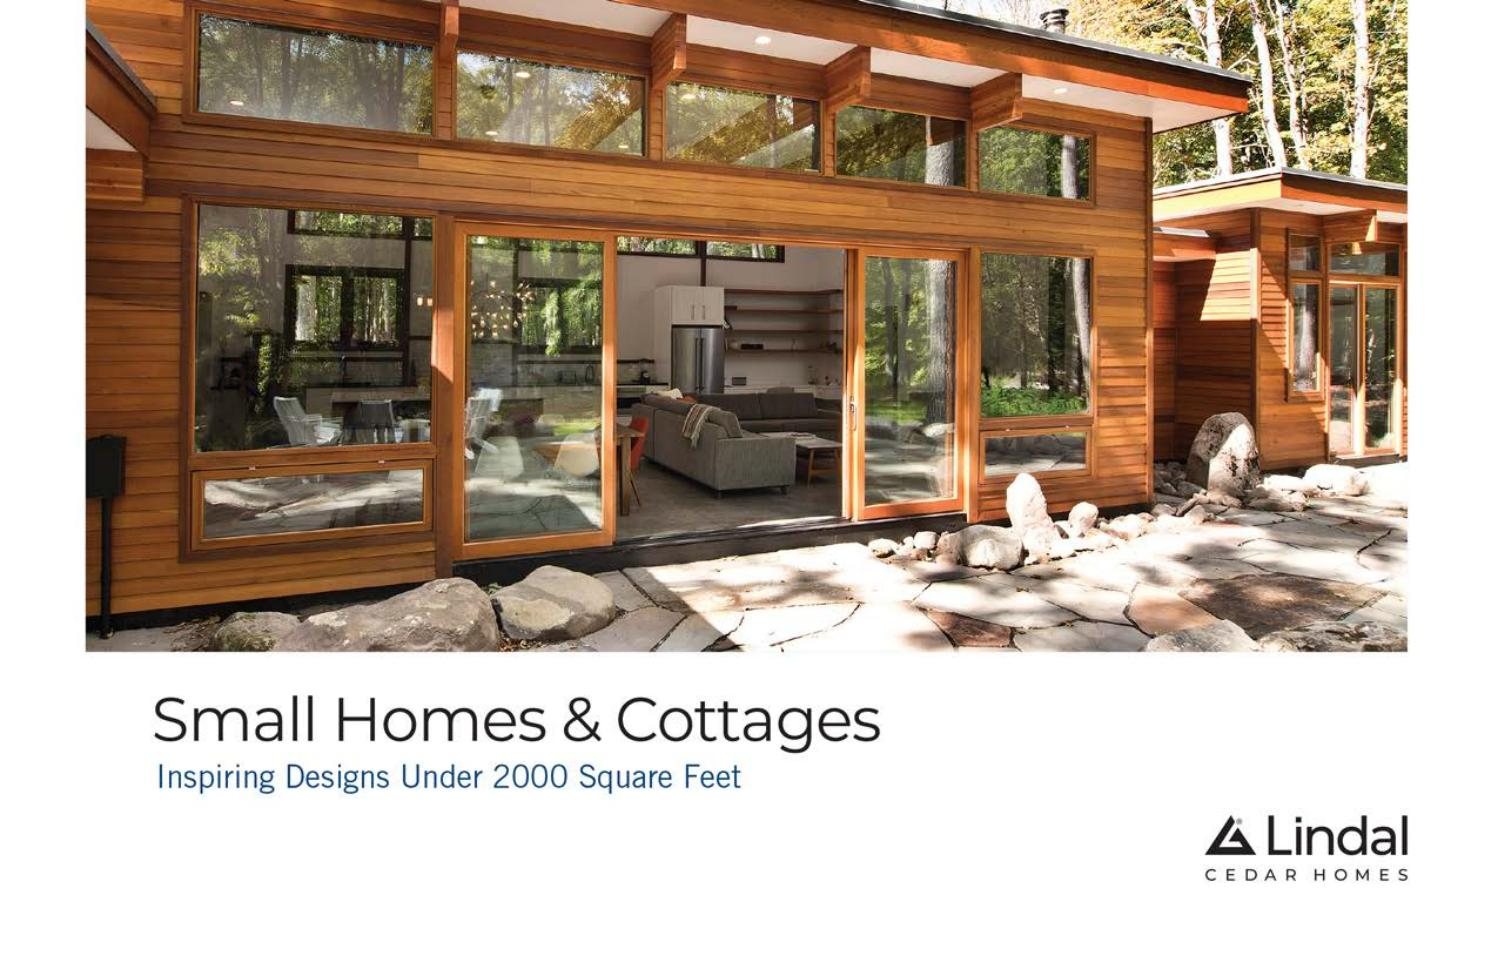 Small Homes Cottages Volume Two By Lindal Cedar Homes Issuu